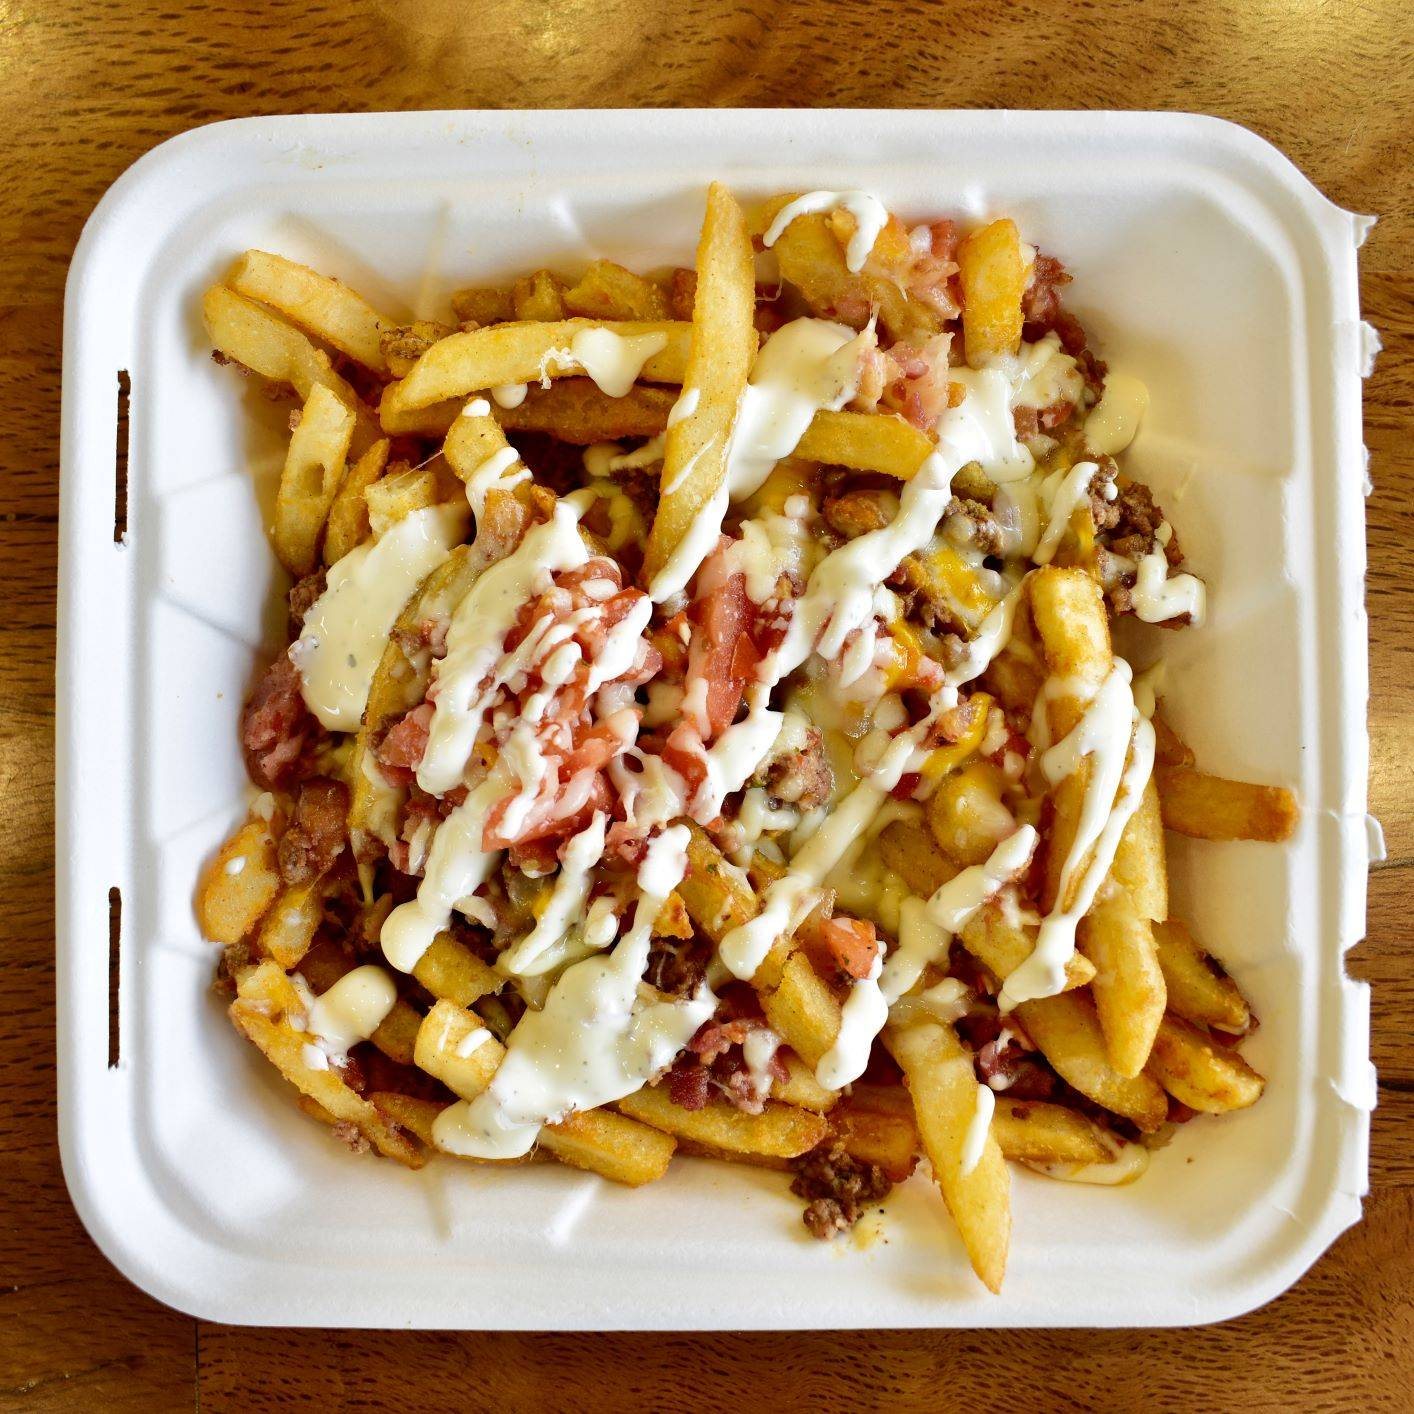 french fries with bacon crumbles and ranch dressing